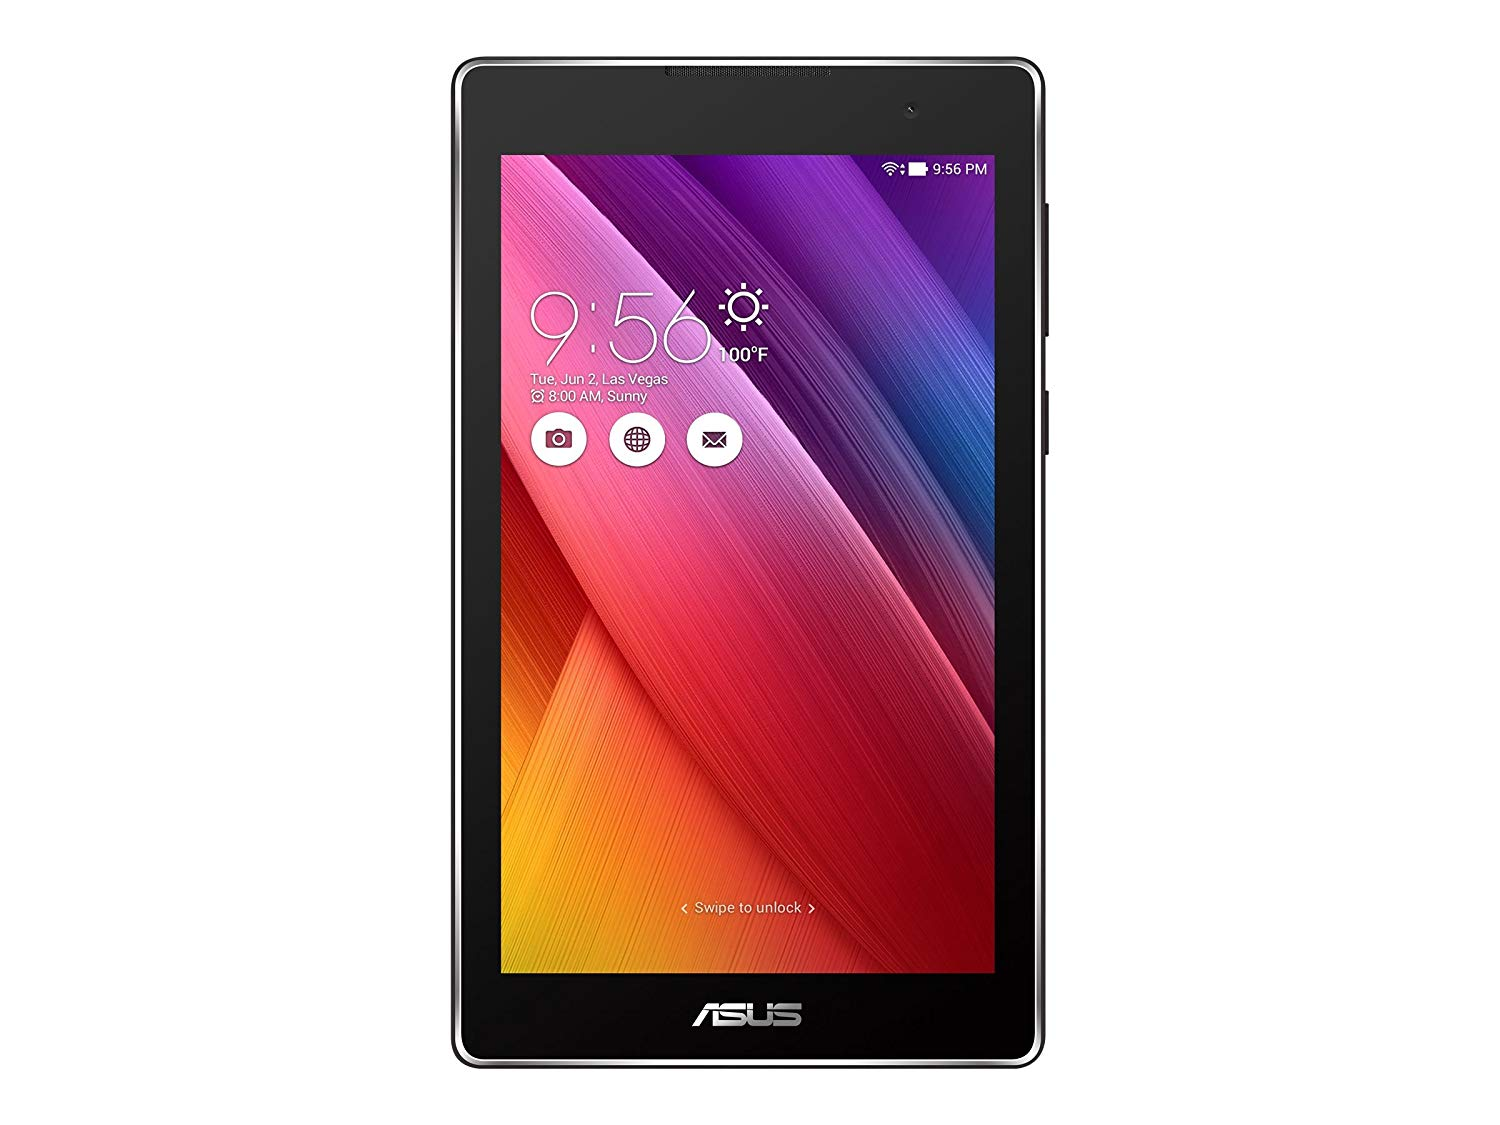 asus zenpad black tablet accent tablette fast computers accessories modern stools barn door table telephone argos pearl drum throne with backrest piece set pottery hardware target